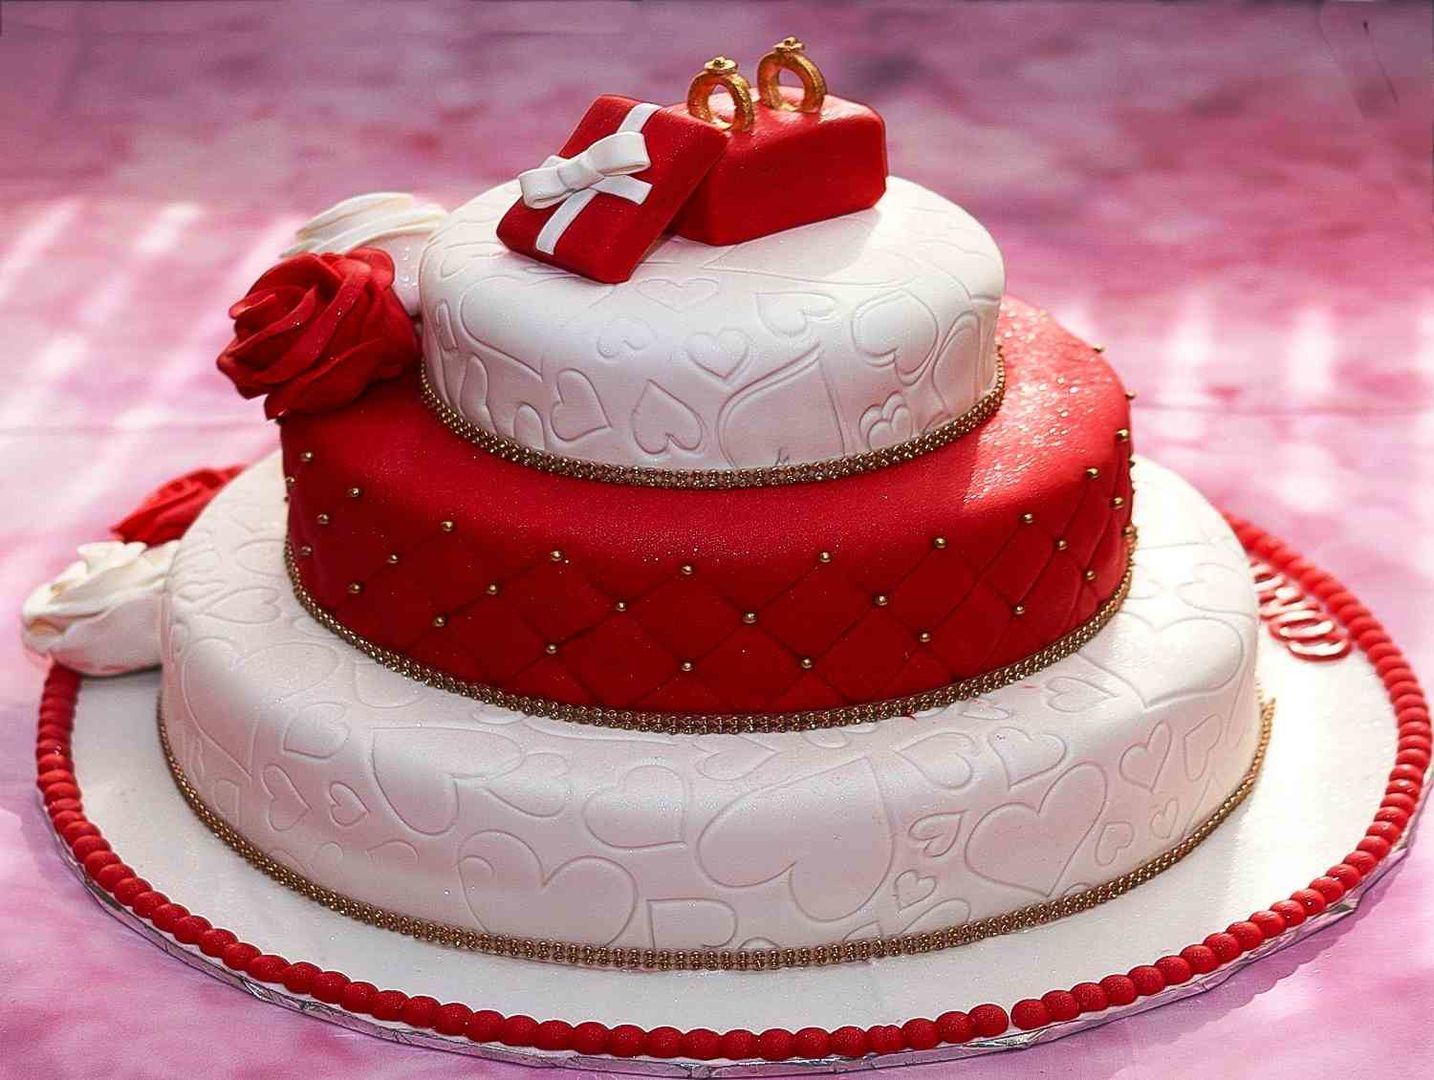 Cake Delivery @ Tasty Tweets | Cake Delivery in Gurgaon